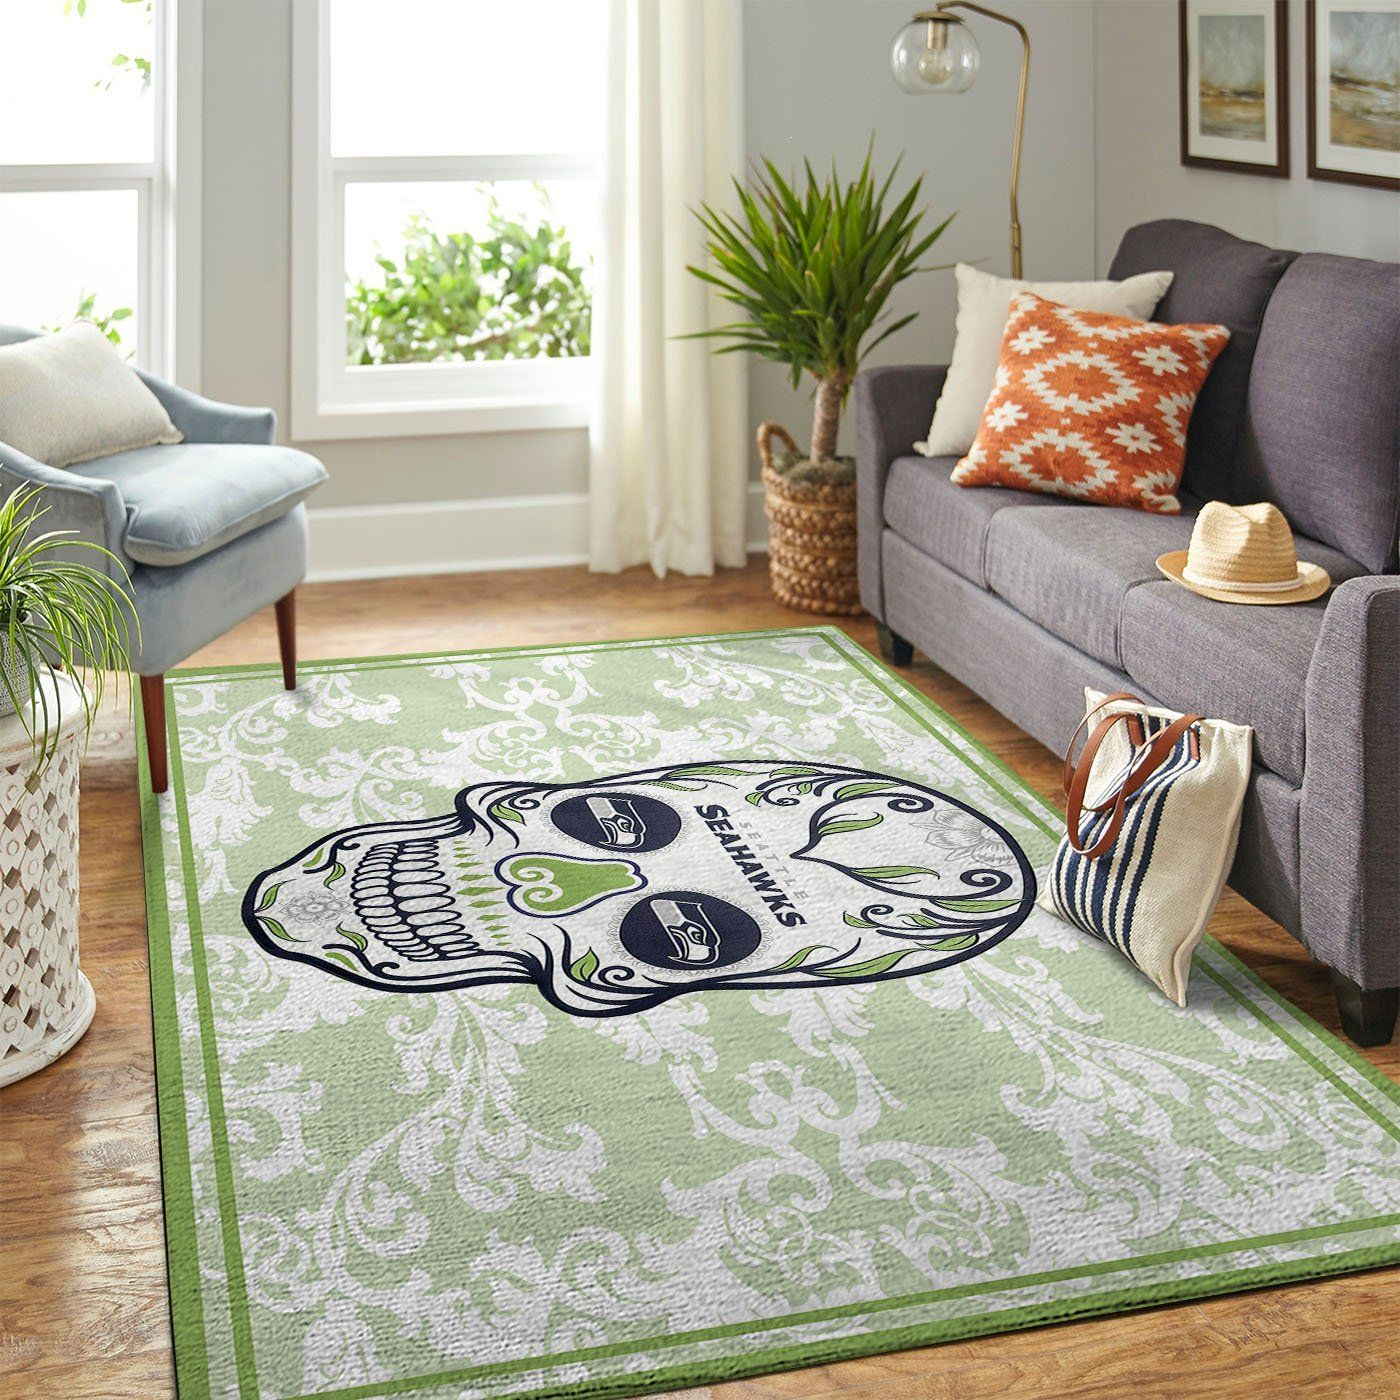 Amazon Seattle Seahawks Living Room Area No4977 Rug